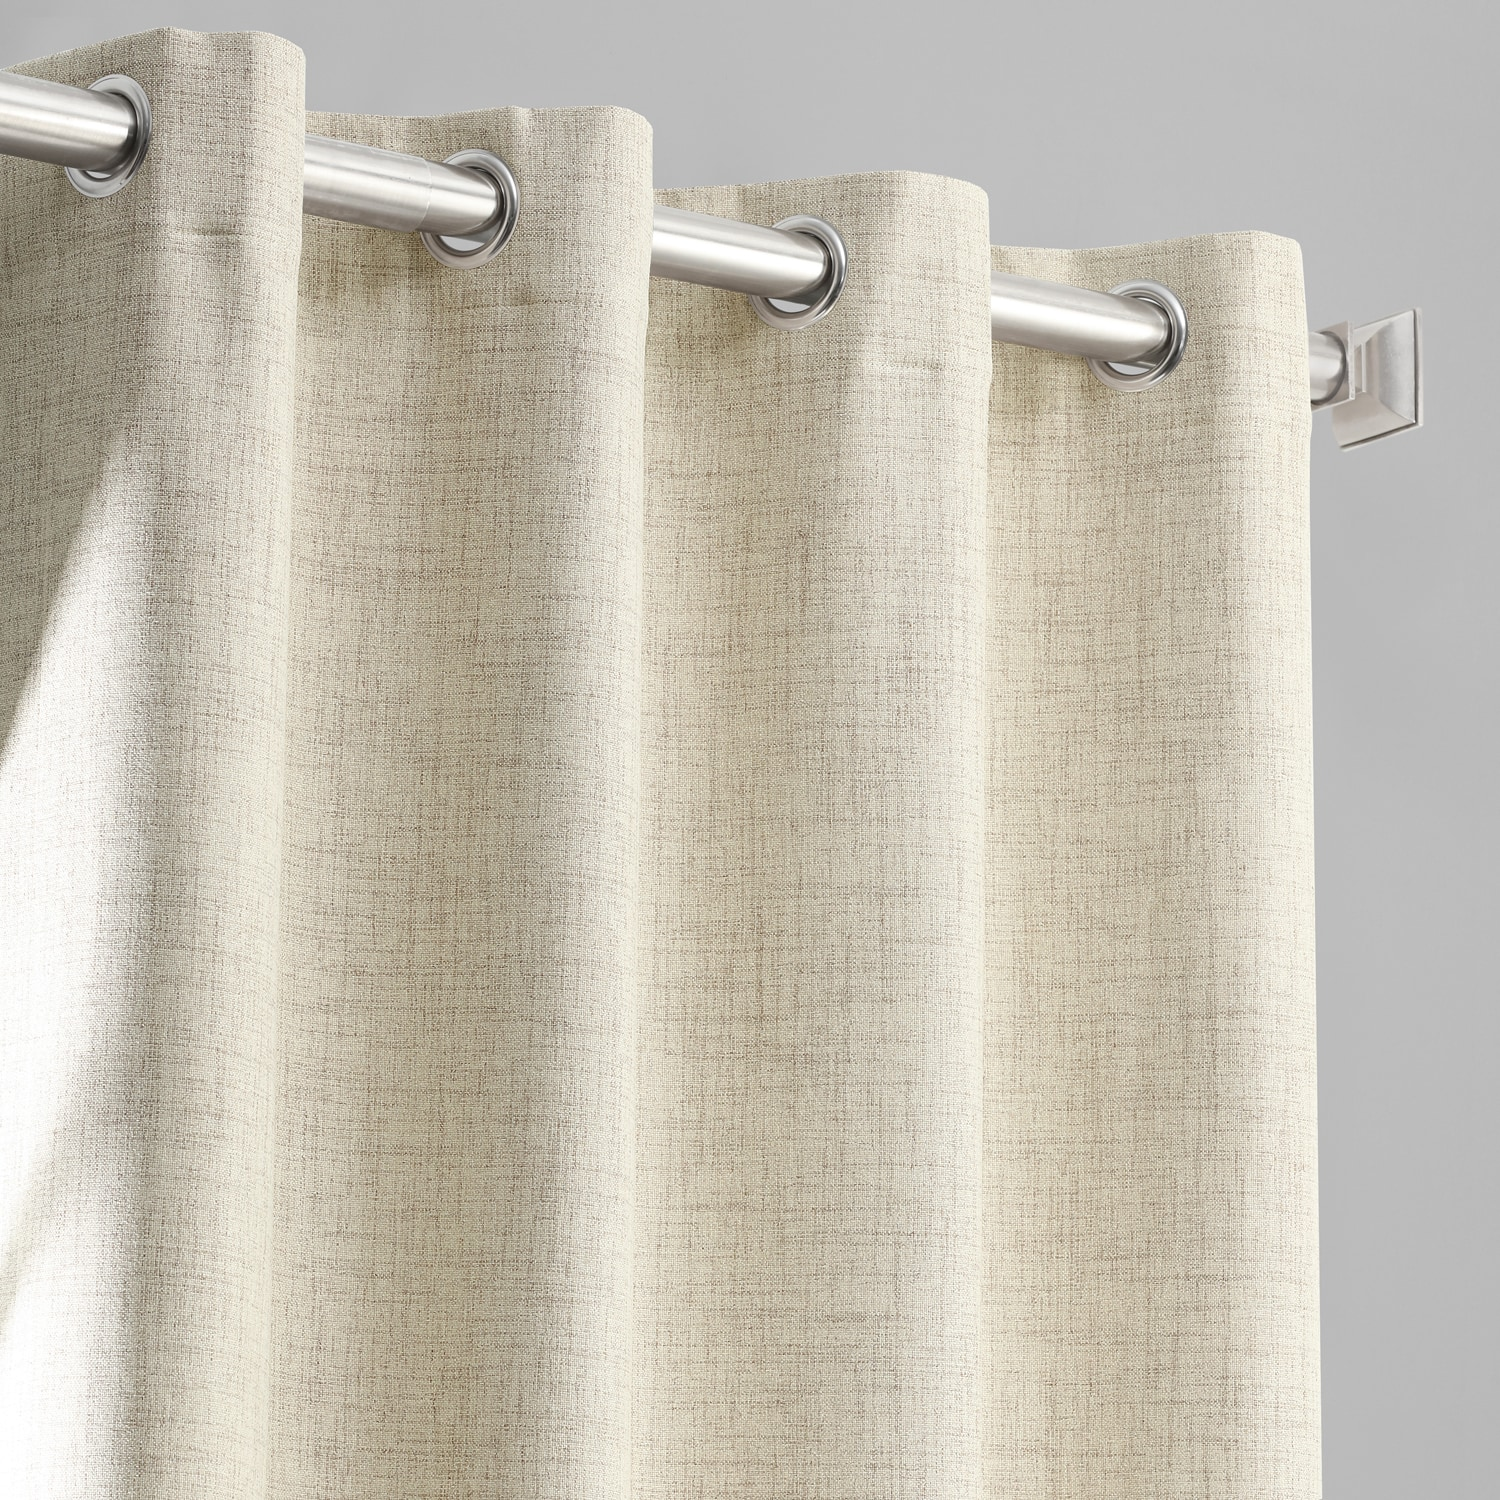 Toasted Tan Vintage Thermal Cross Linen Weave Max Blackout Grommet Curtain